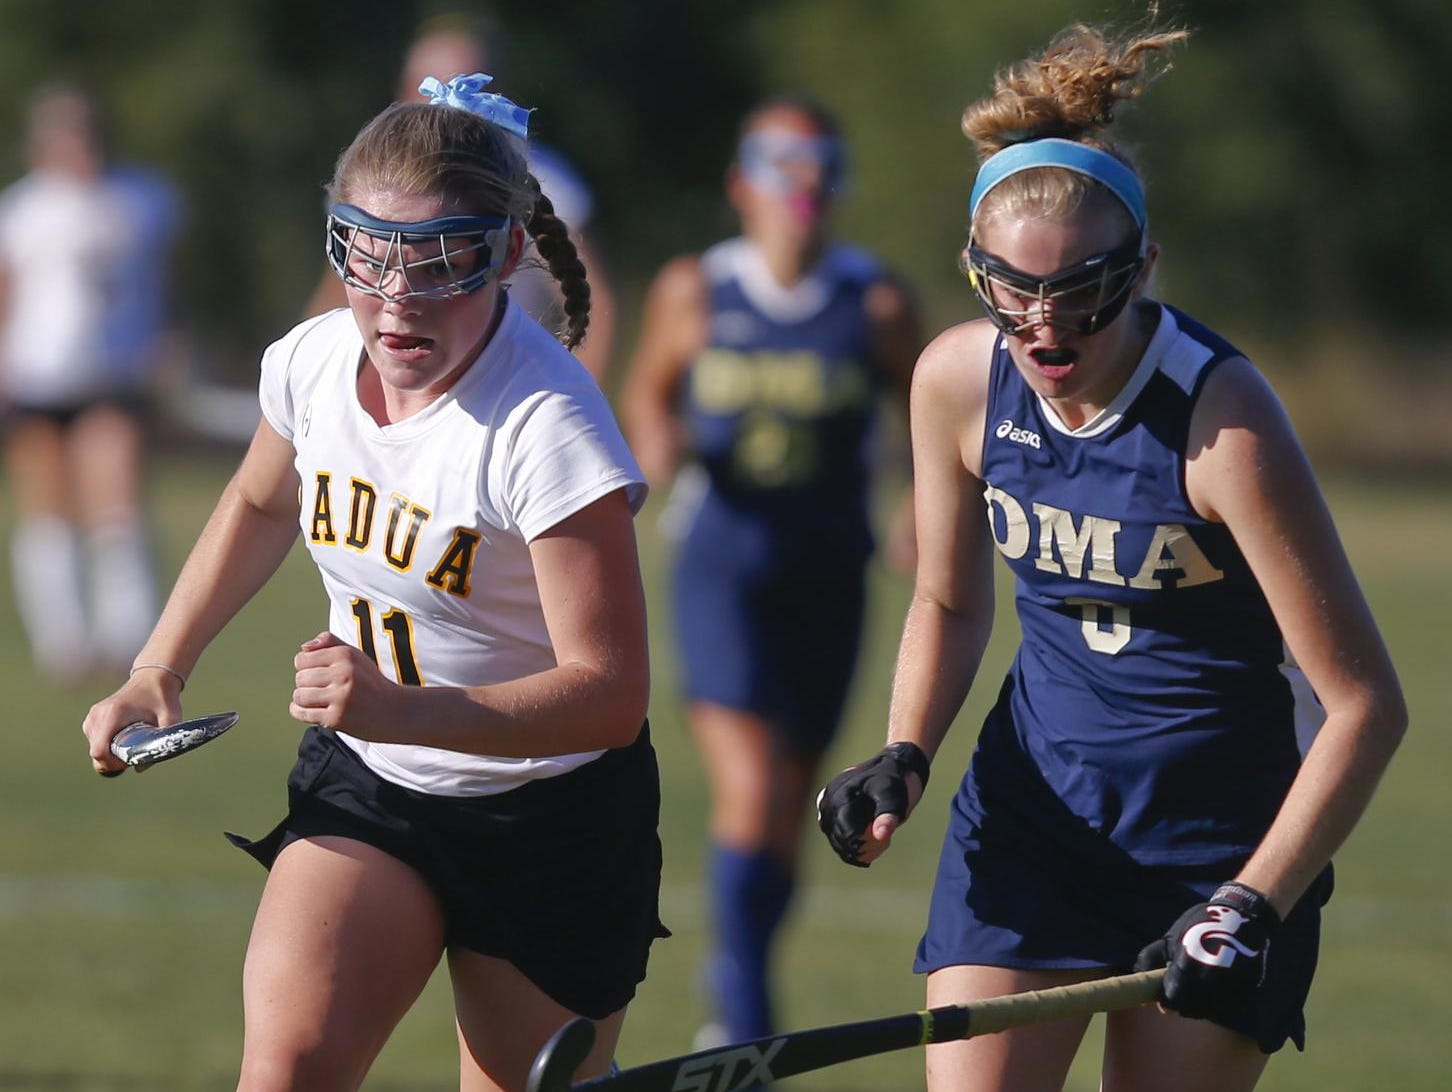 Padua's Jill Sherman (left) pursues the ball with Delaware Military Academy's Maya Sortino in Padua's 5-0 win at Forbes Field on Wednesday.